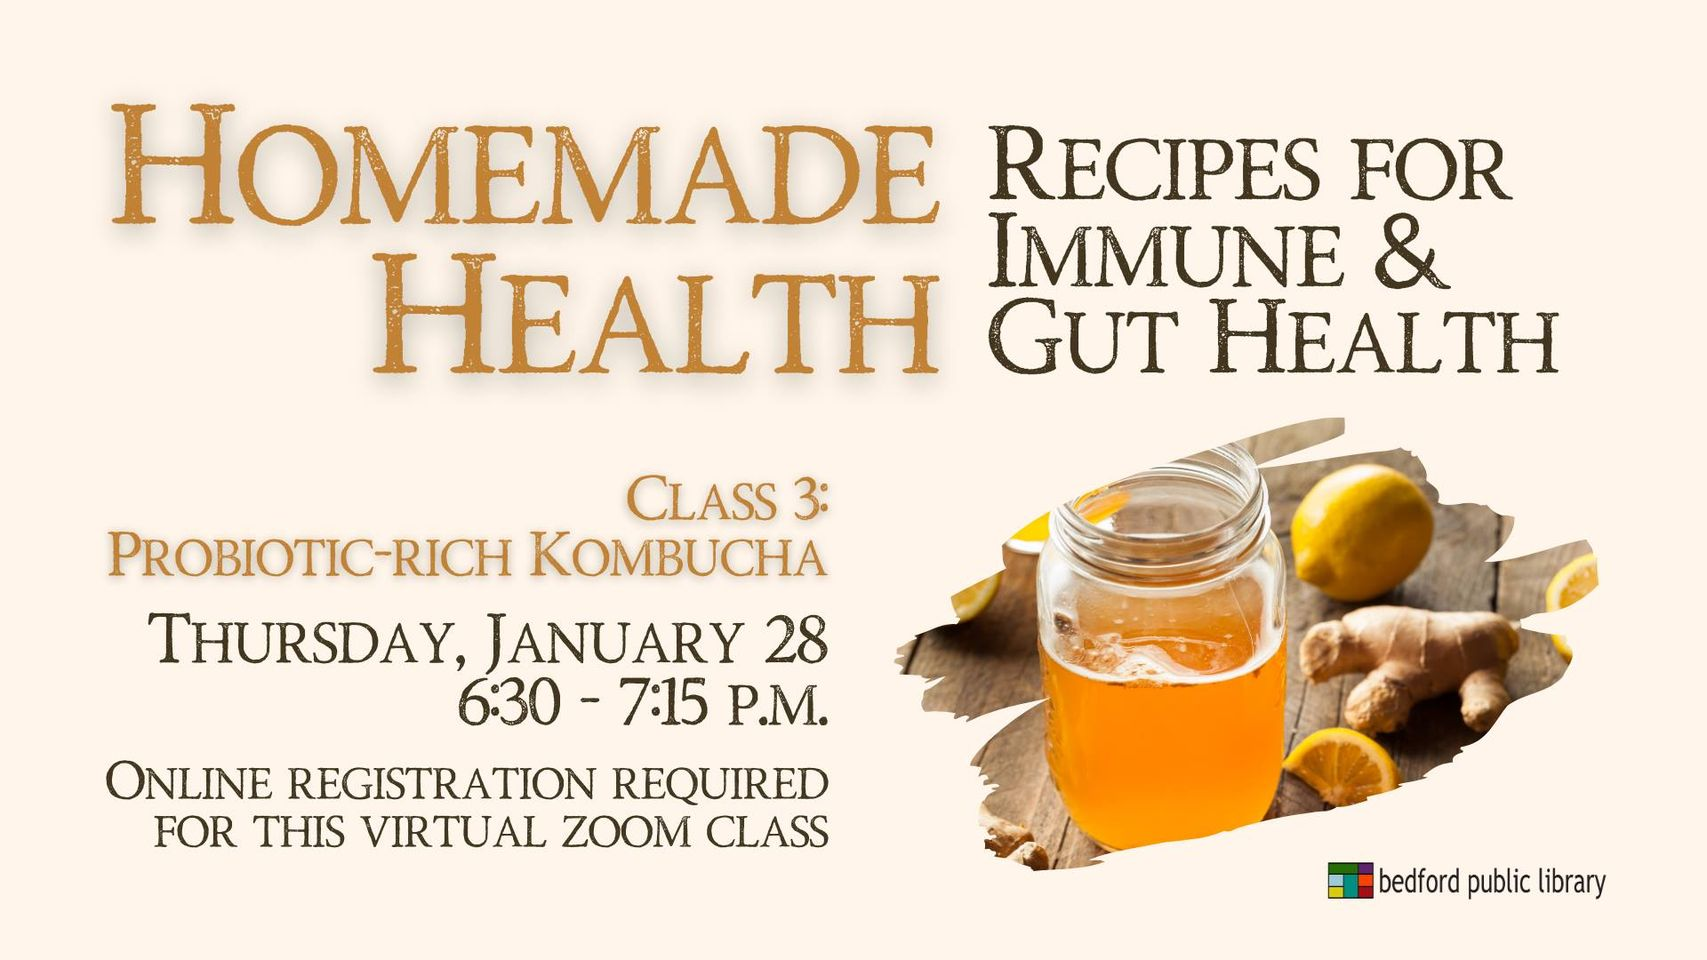 Homemade Health: Recipes for Immune & Gut Health